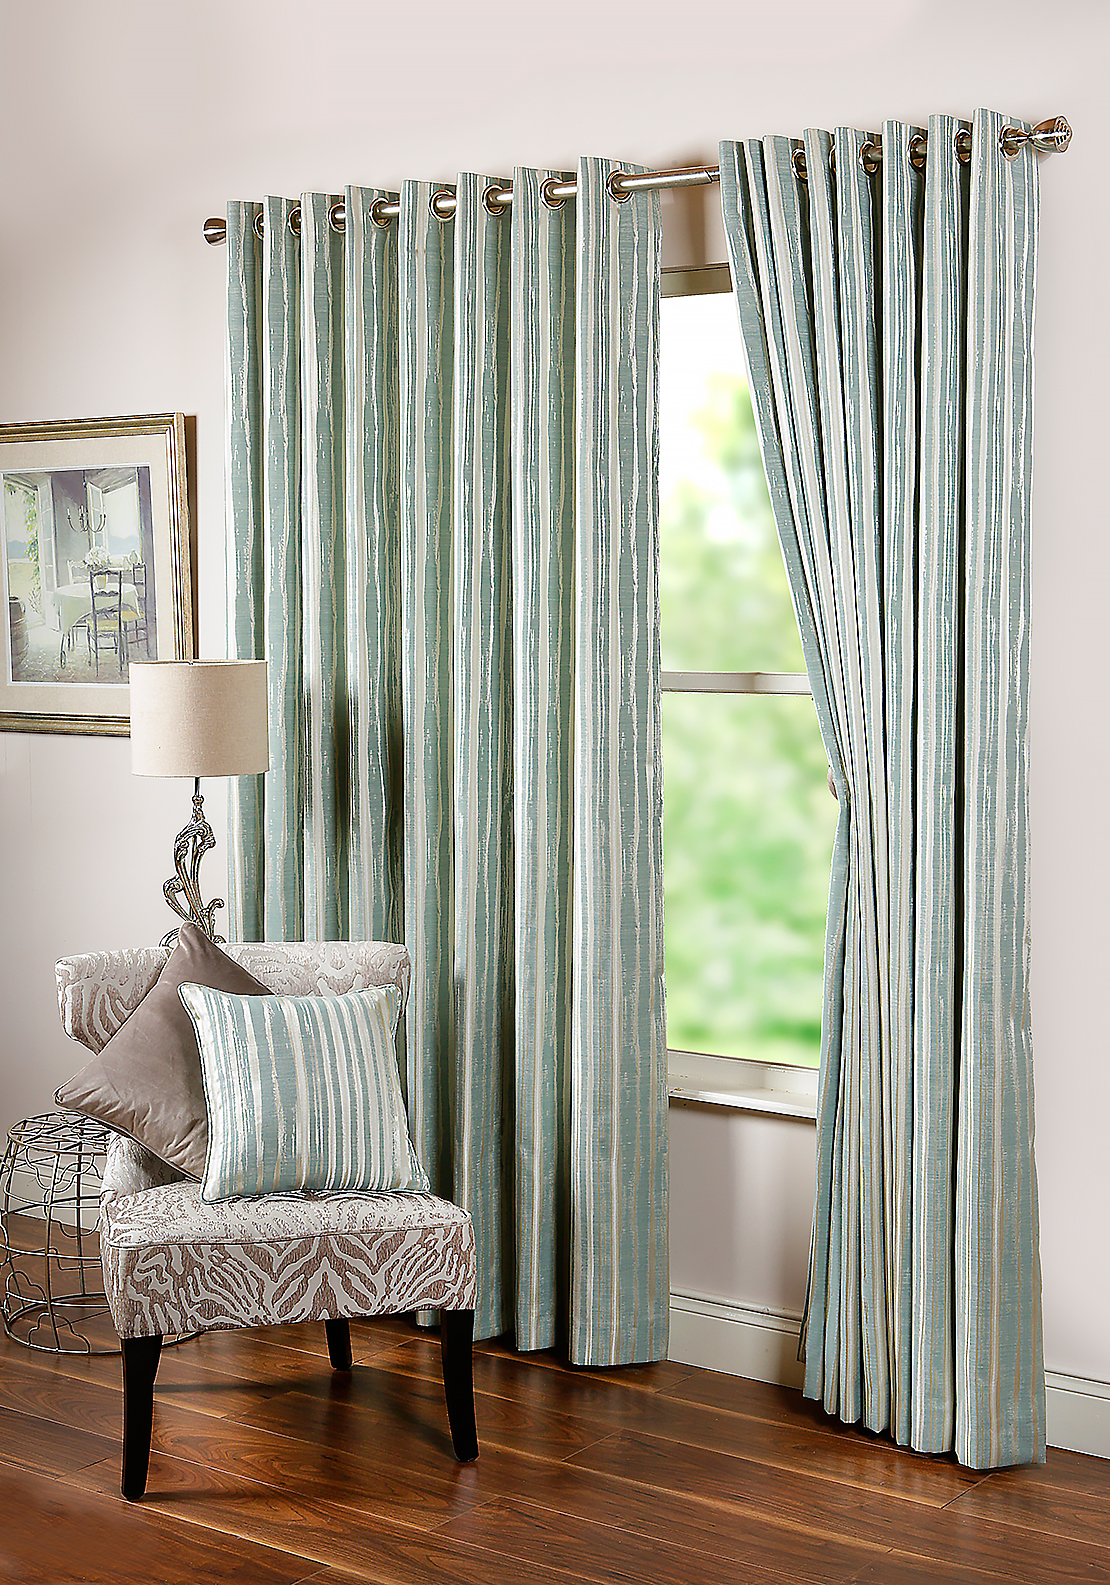 "Scatterbox Dawn Abstract Striped Fully Lined Eyelet Curtains 110 x 90"", Duck Egg Blue"